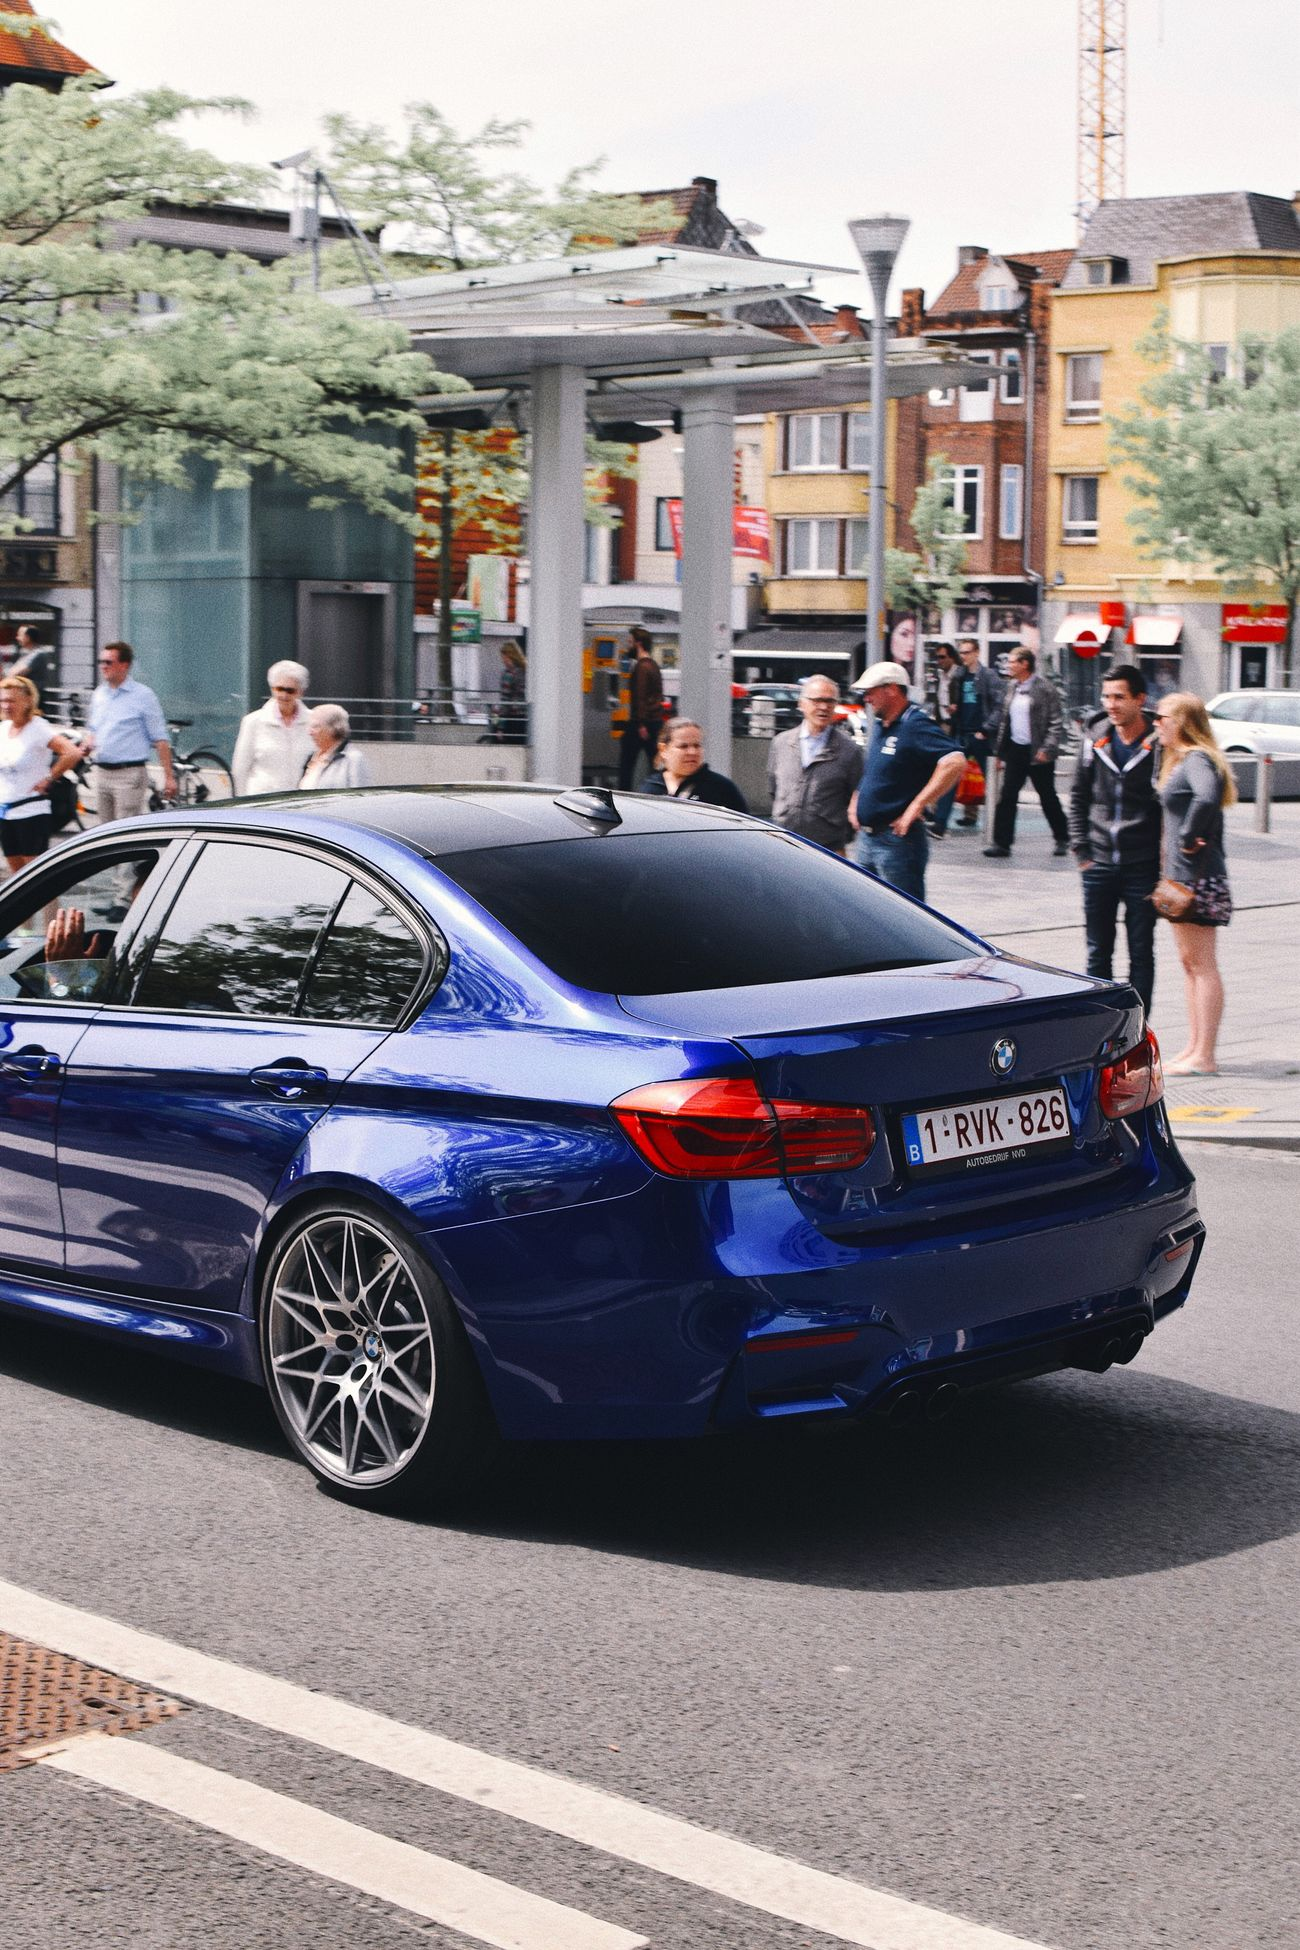 M3 Transportation Architecture Mode Of Transport Built Structure Land Vehicle Car (null)Street Building Exterior City Outdoors People Day Adult Adults Only Sportcar Horsepower Bmw M3